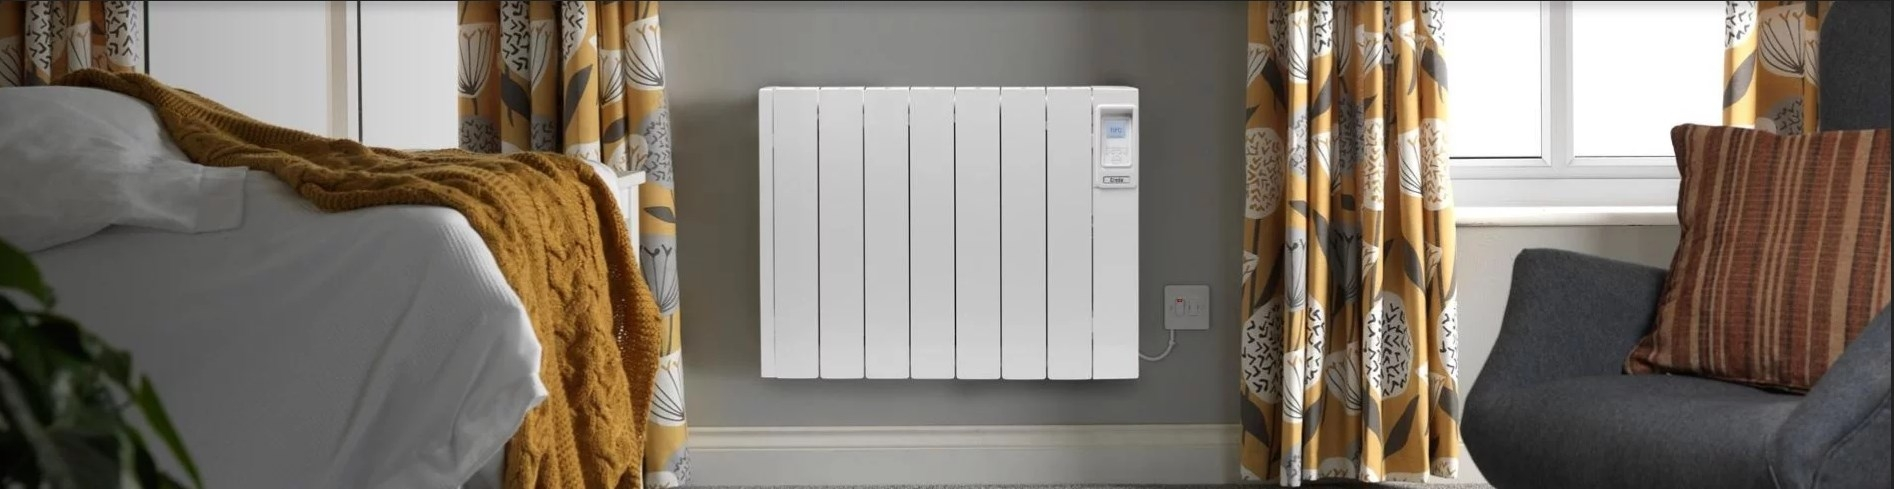 Alert Electrical - Electric Radiators